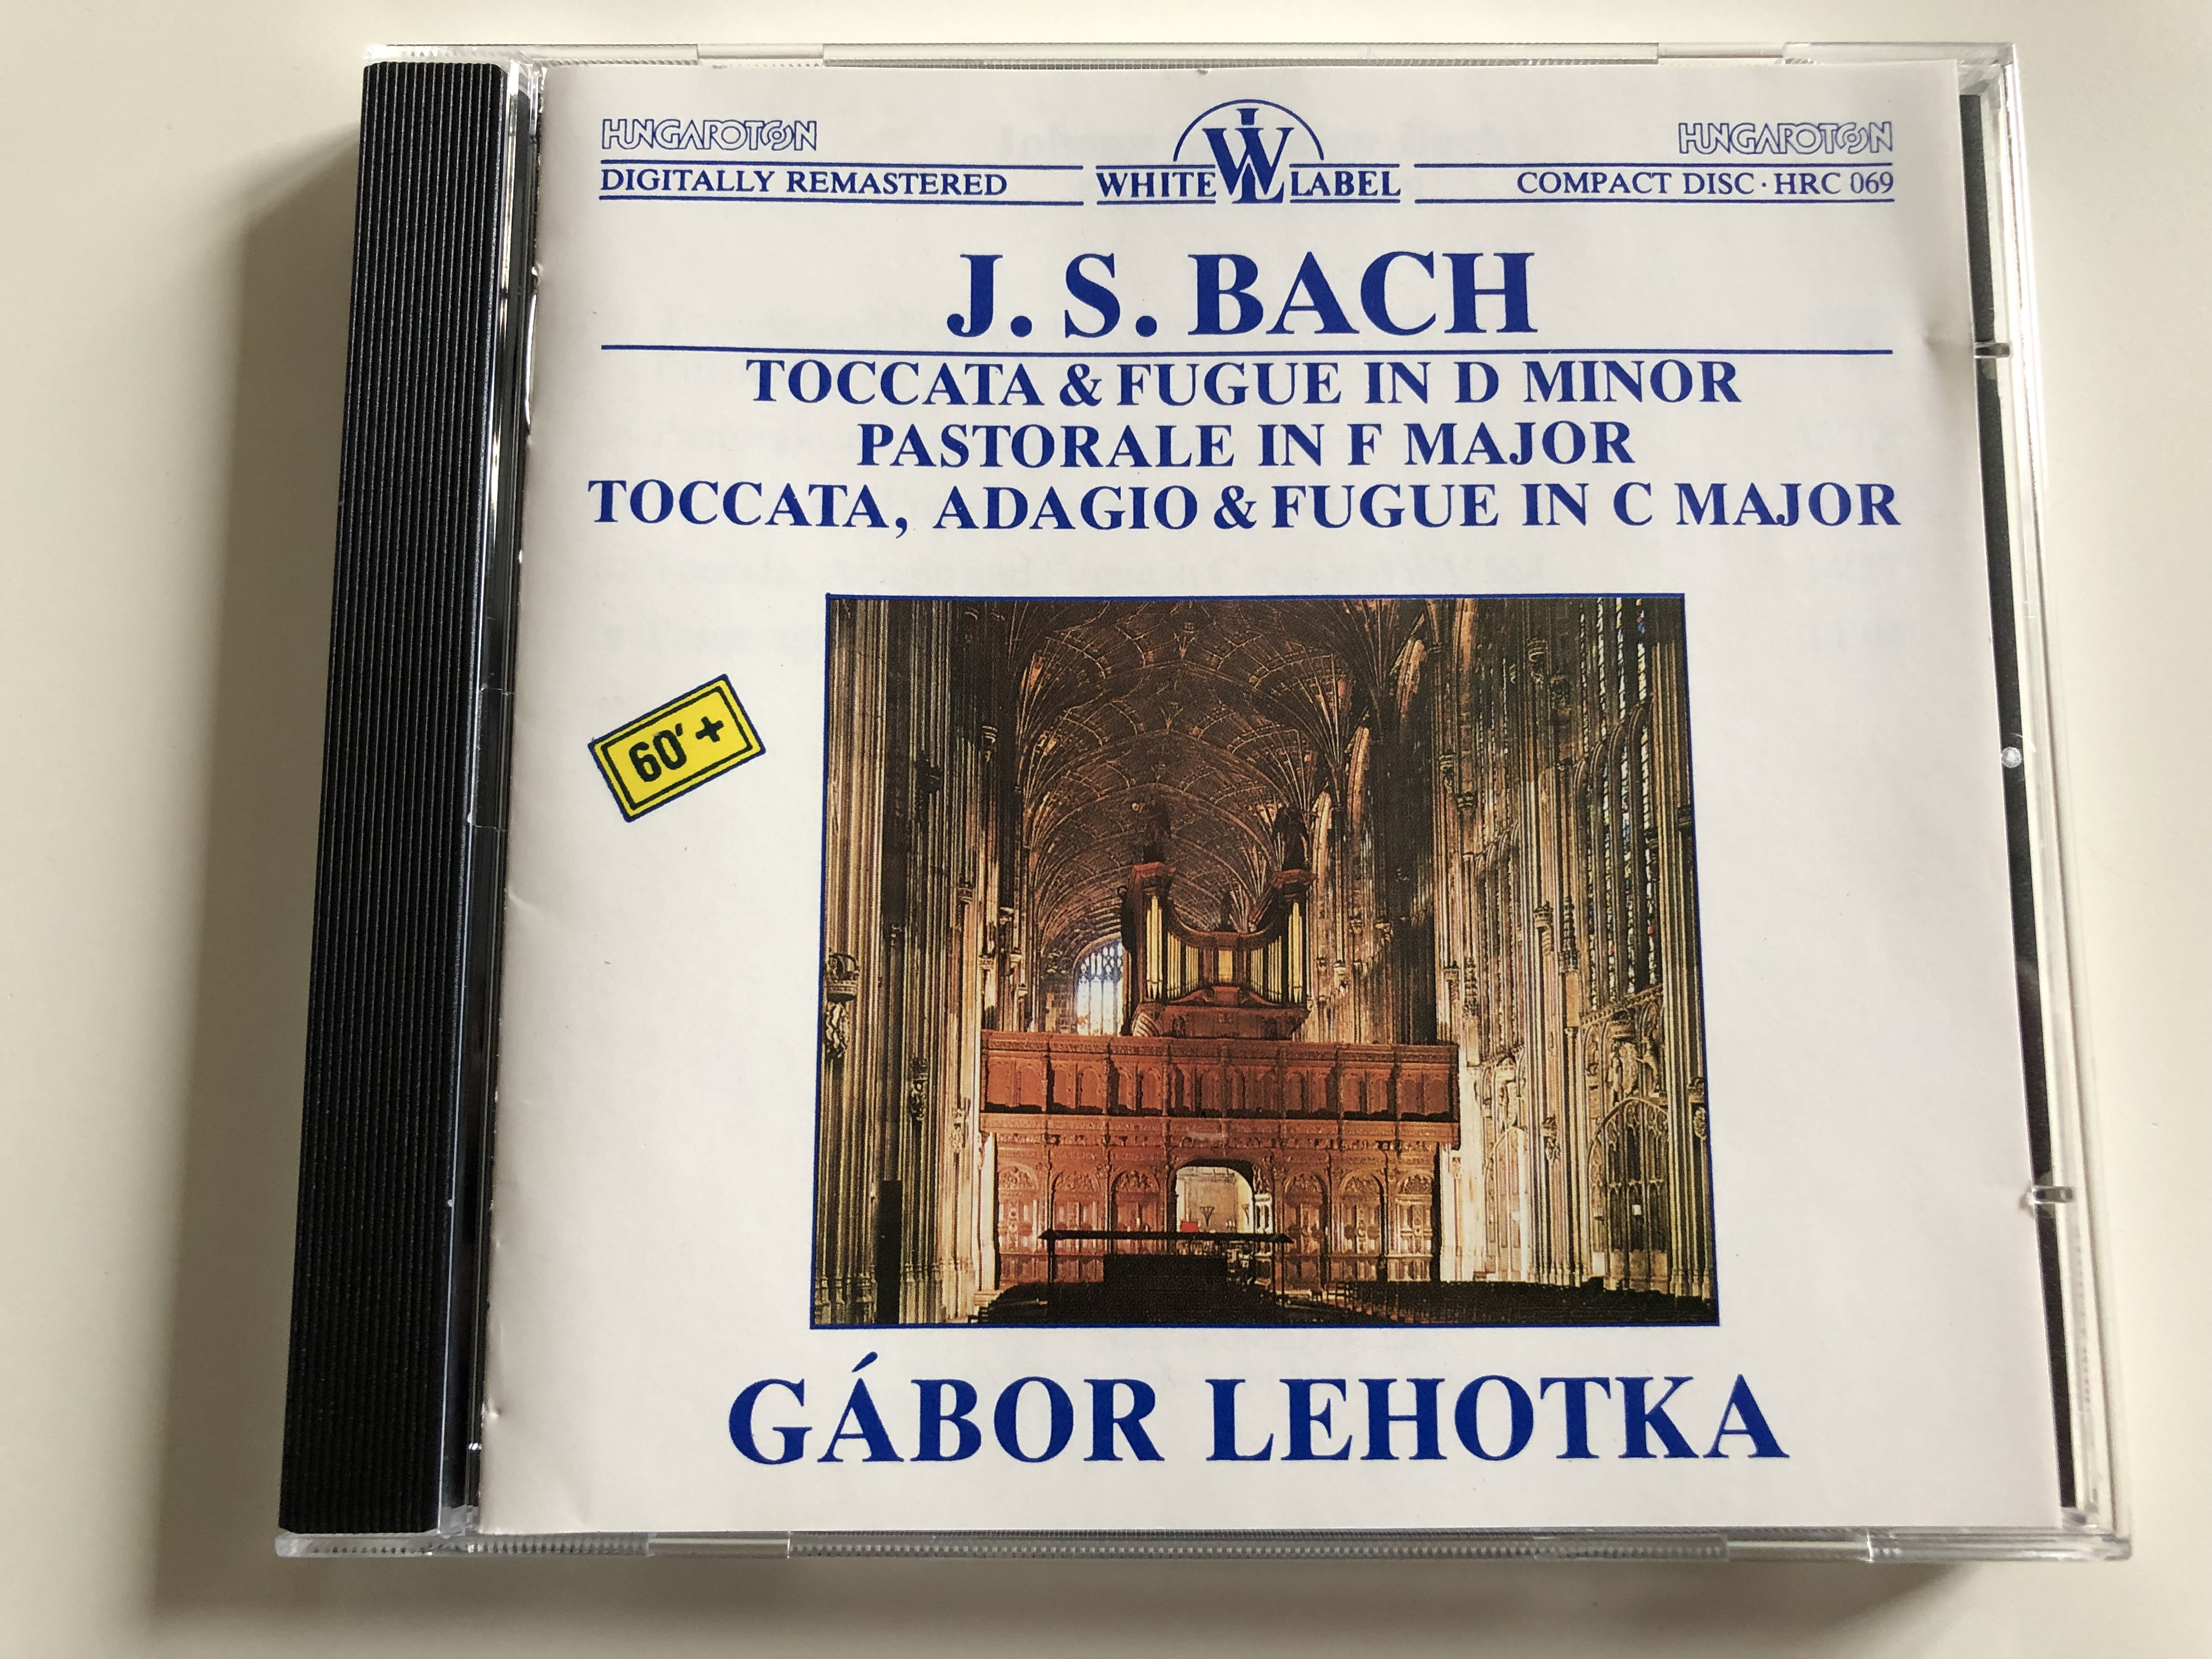 j.s.-bach-organ-works-toccata-fugue-in-d-minor-pastorale-in-f-major-toccata-adagio-fugue-in-c-major-g-bor-lehotka-organ-hungaroton-white-label-hrc-069-1-.jpg